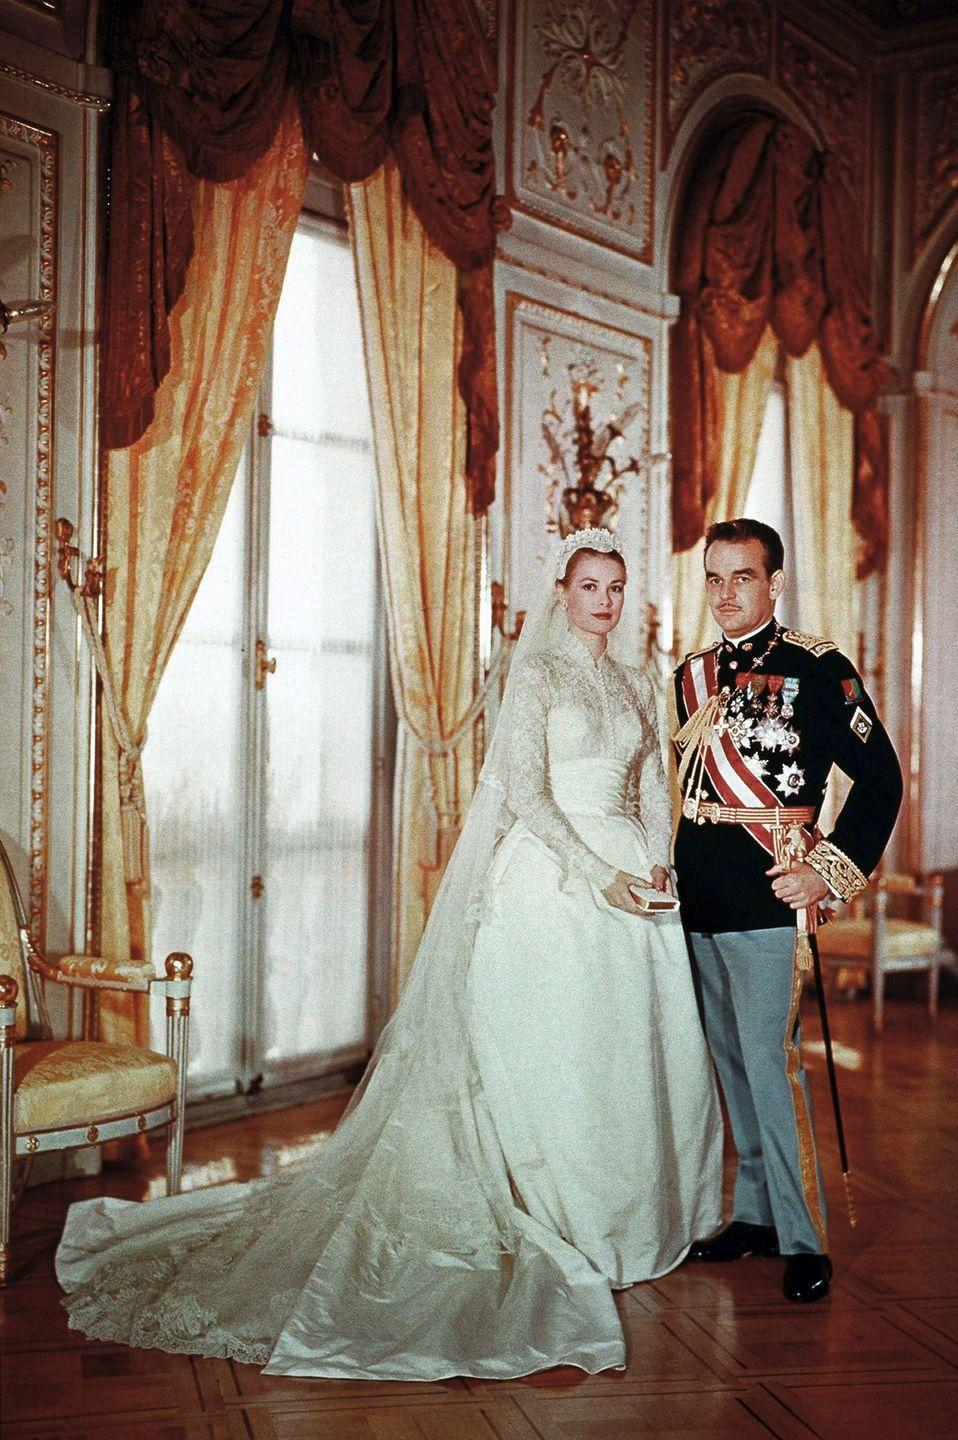 <p>Hollywood royalty Grace Kelly met Prince Rainier III at the Cannes Film Festival. At the time, the prince had expressed interest in marrying an American woman, and Greek shipping magnate Aristotle Onasis suggested Marilyn Monroe. Prince Rainier felt that Marilyn's persona was not quite dignified enough for his family or his position, but he laid eyes on Grace while she was in town promoting <em>To Catch a Thief. </em> </p><p>The two officially met during a photo-op for <em>Paris Match</em> magazine, and the prince sent Kelly a charming letter after their initial meeting; the rest, was history.</p>